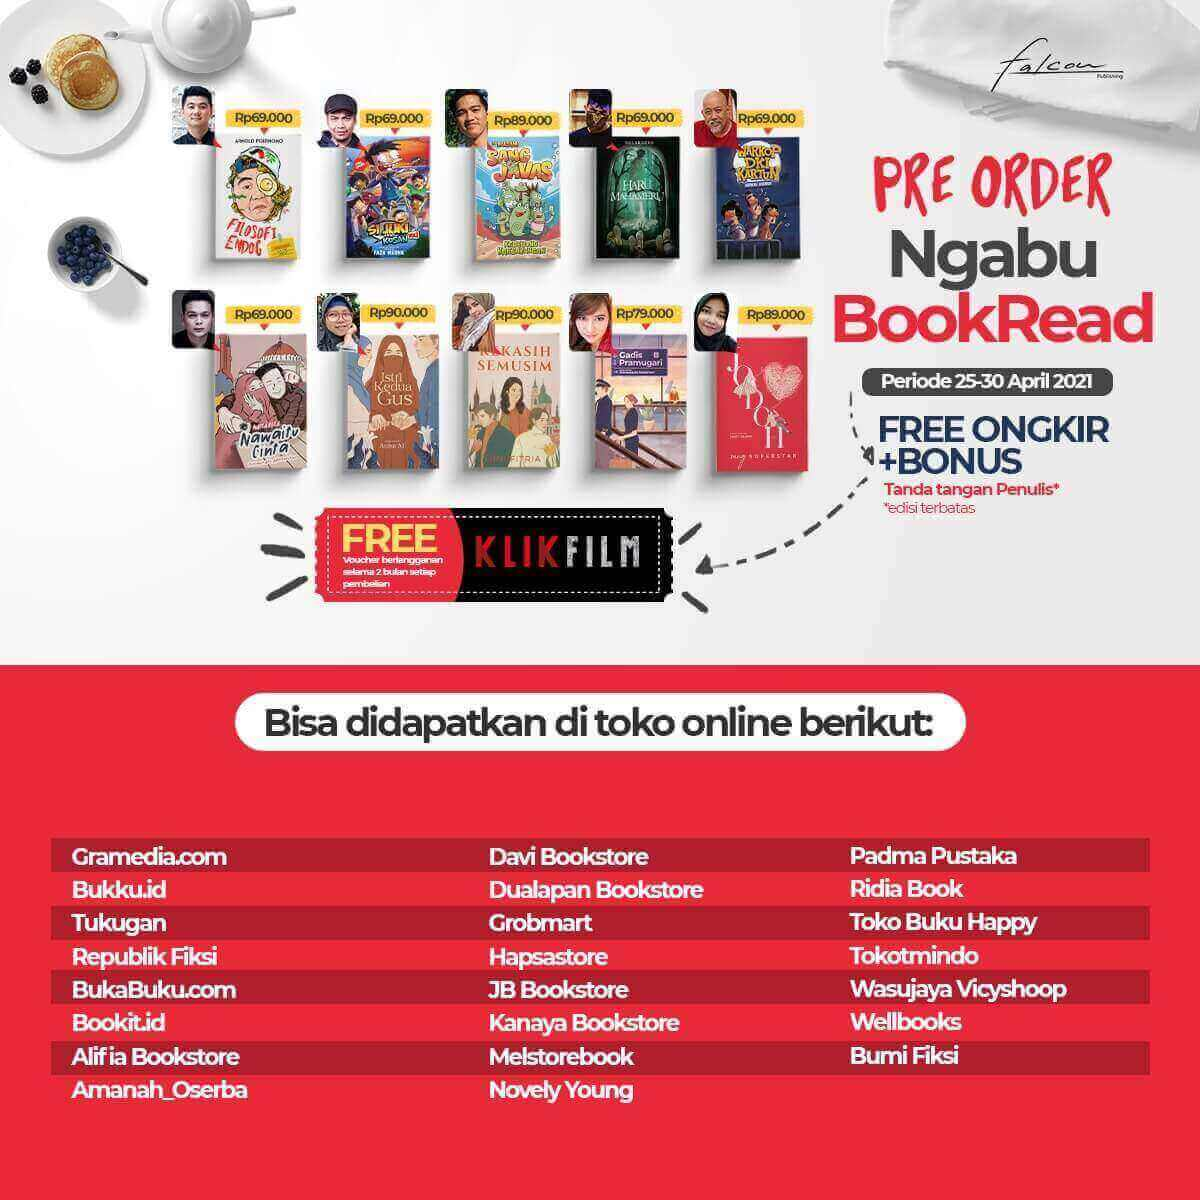 let's ngabubookread with Falcon Publishing